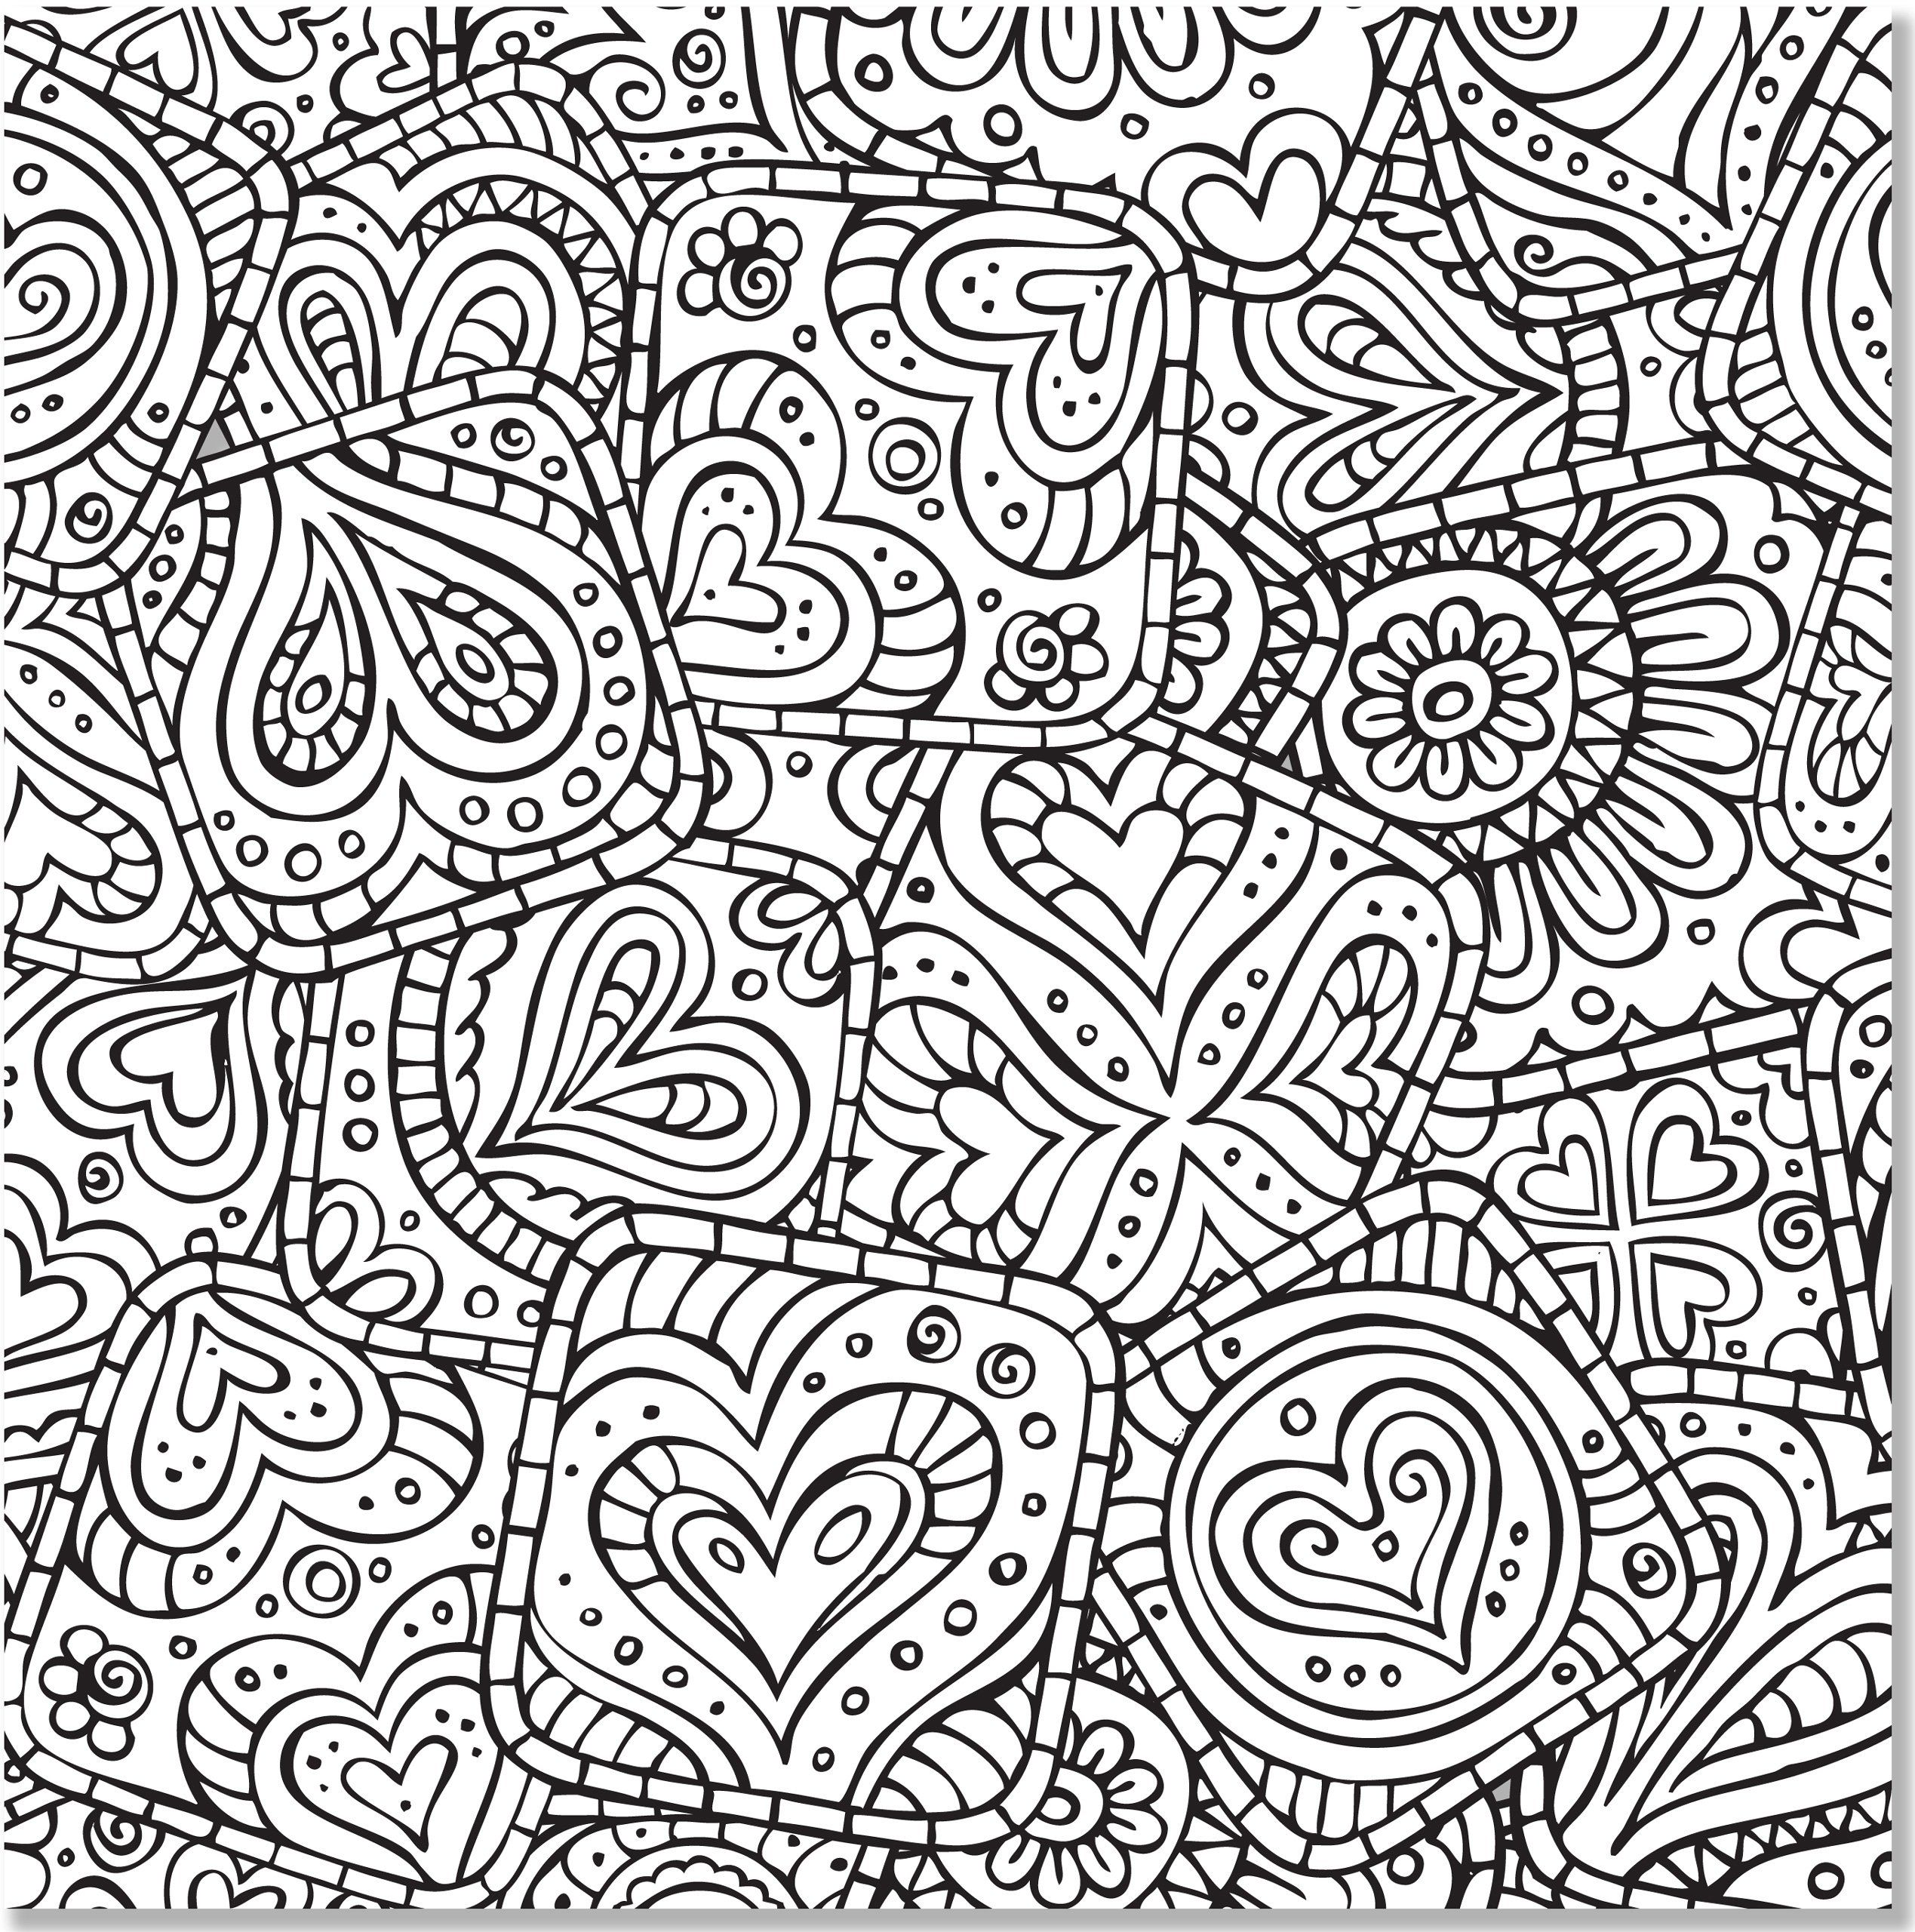 Hearts Abstract Doodle Zentangle Paisley Coloring pages colouring ...